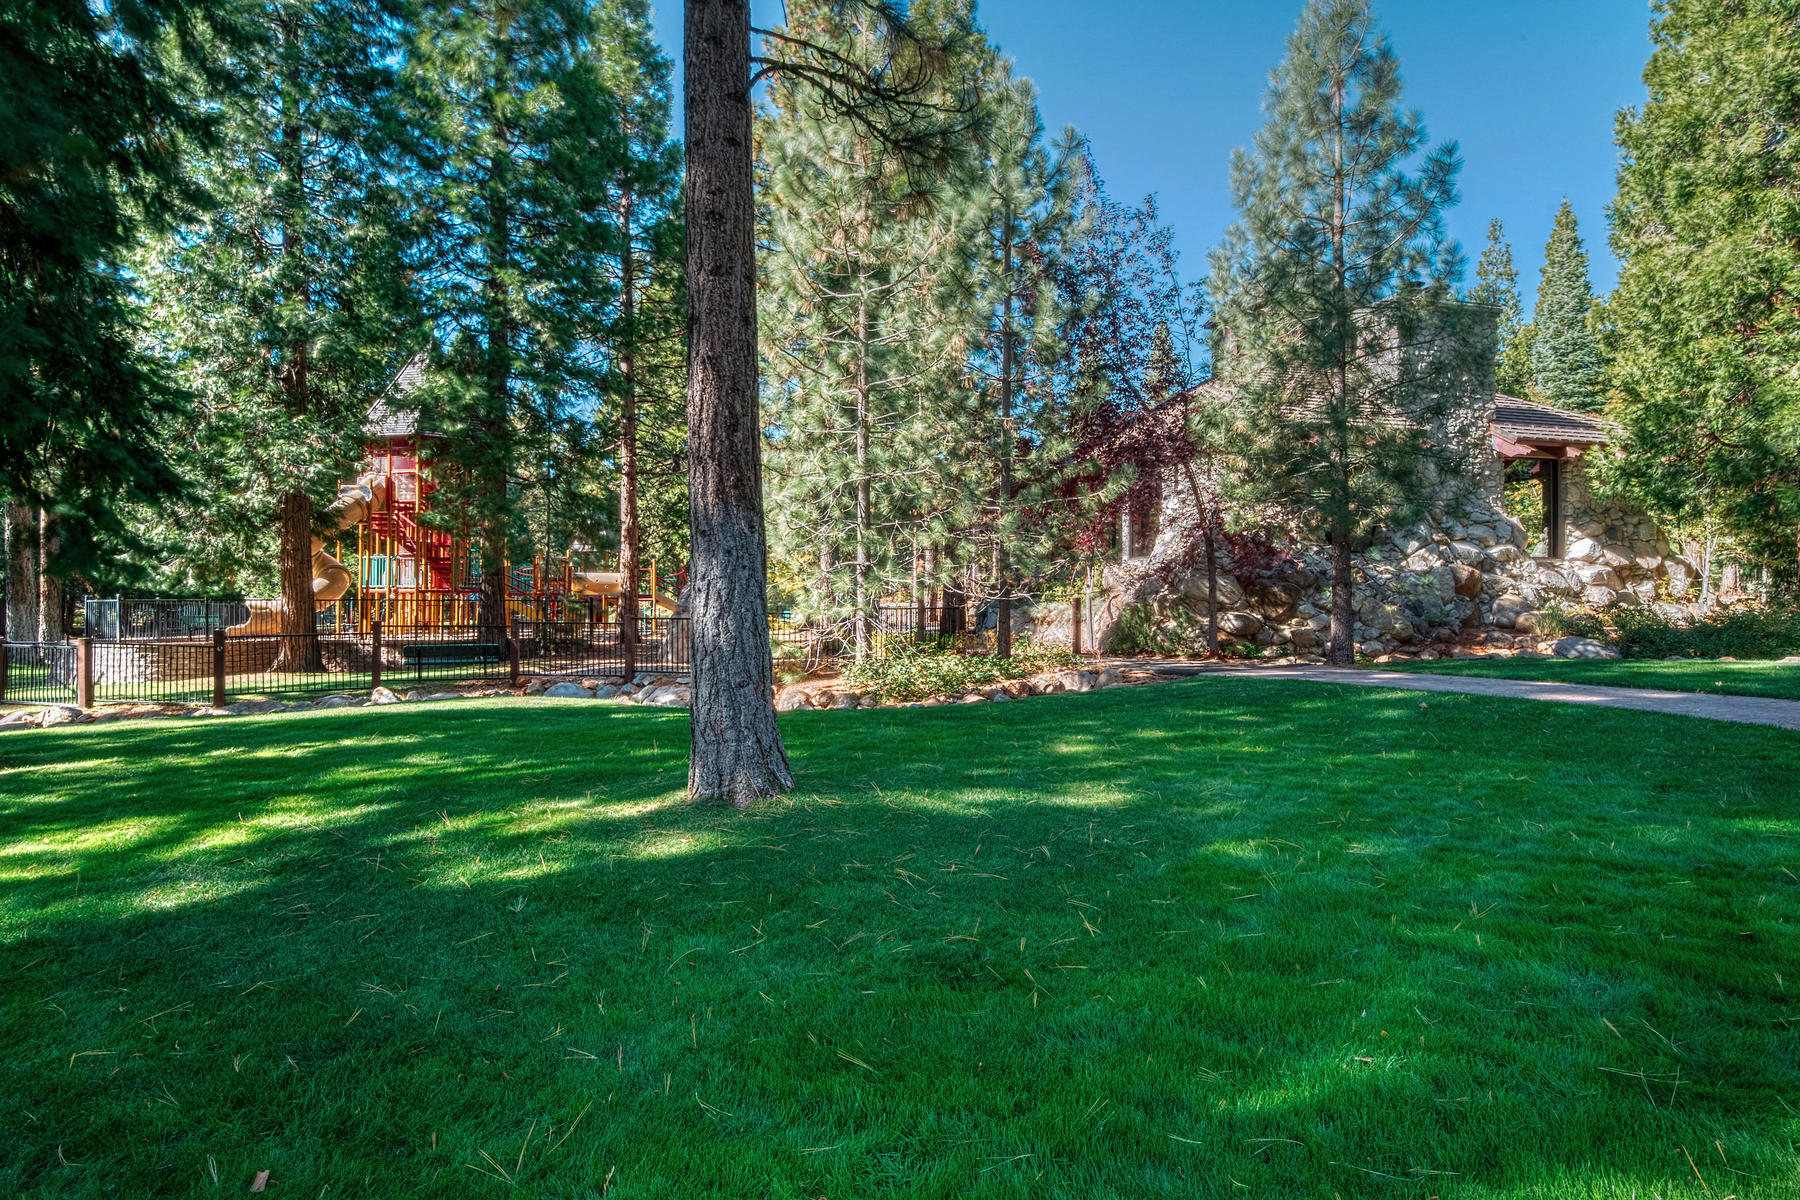 Additional photo for property listing at 2716 Walker Memorial Highway Lake Almanor California 96137 2716 Walker Memorial Highway A-13 Lake Almanor, California 96137 Estados Unidos